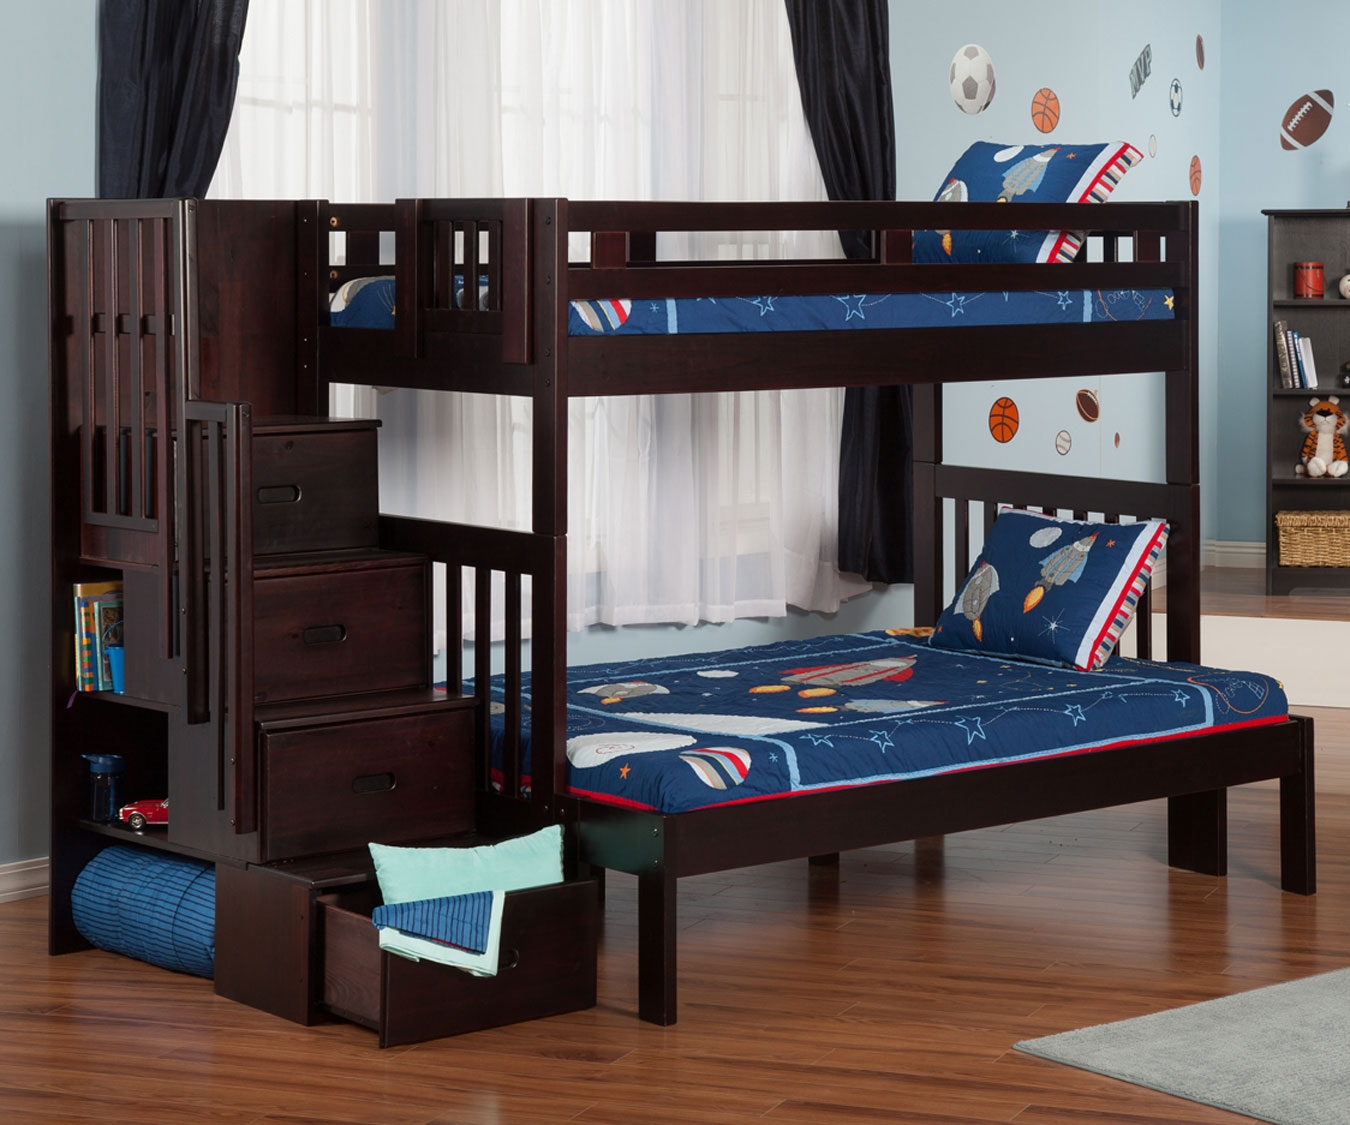 Dark Bunk Beds With Storage